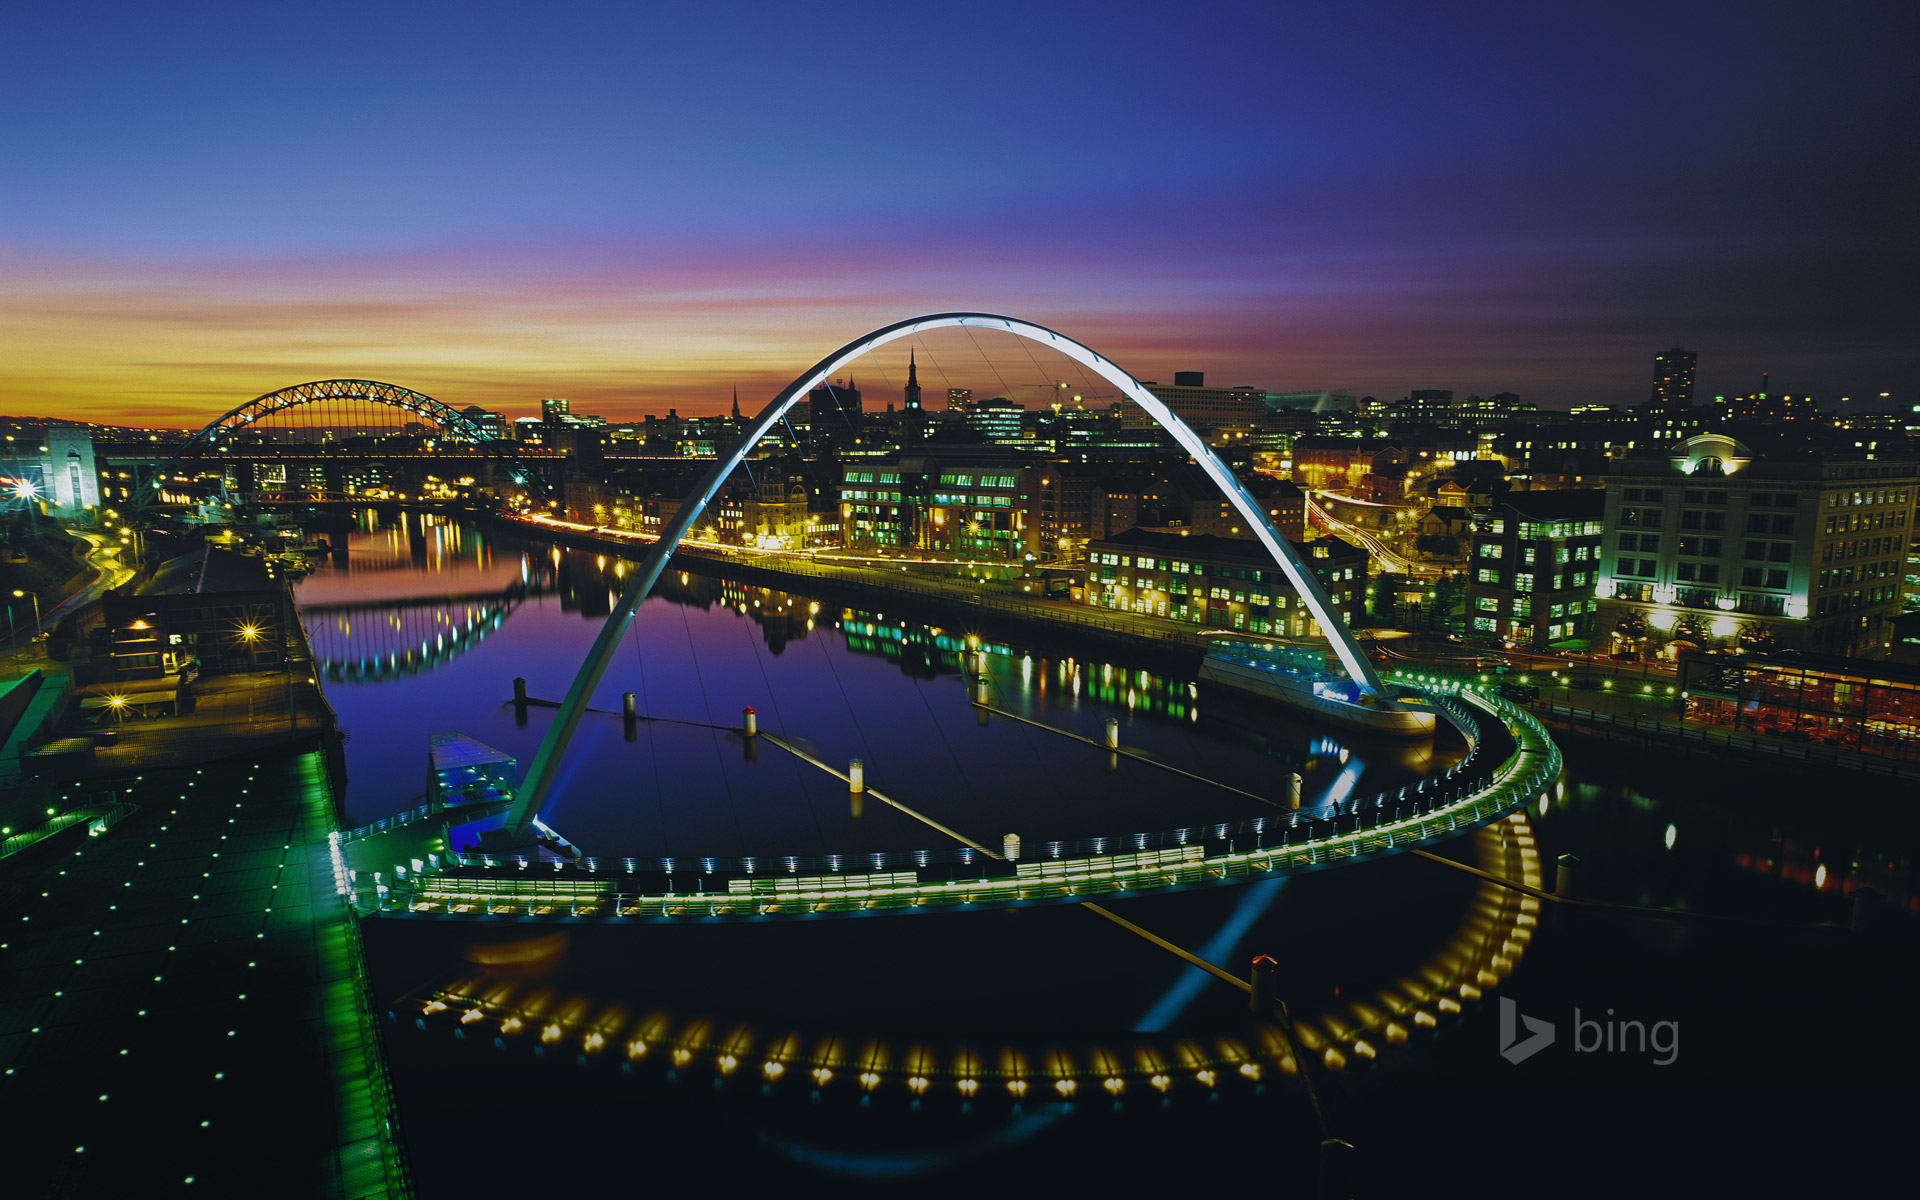 Gateshead Millennium Bridge in Newcastle upon Tyne, England